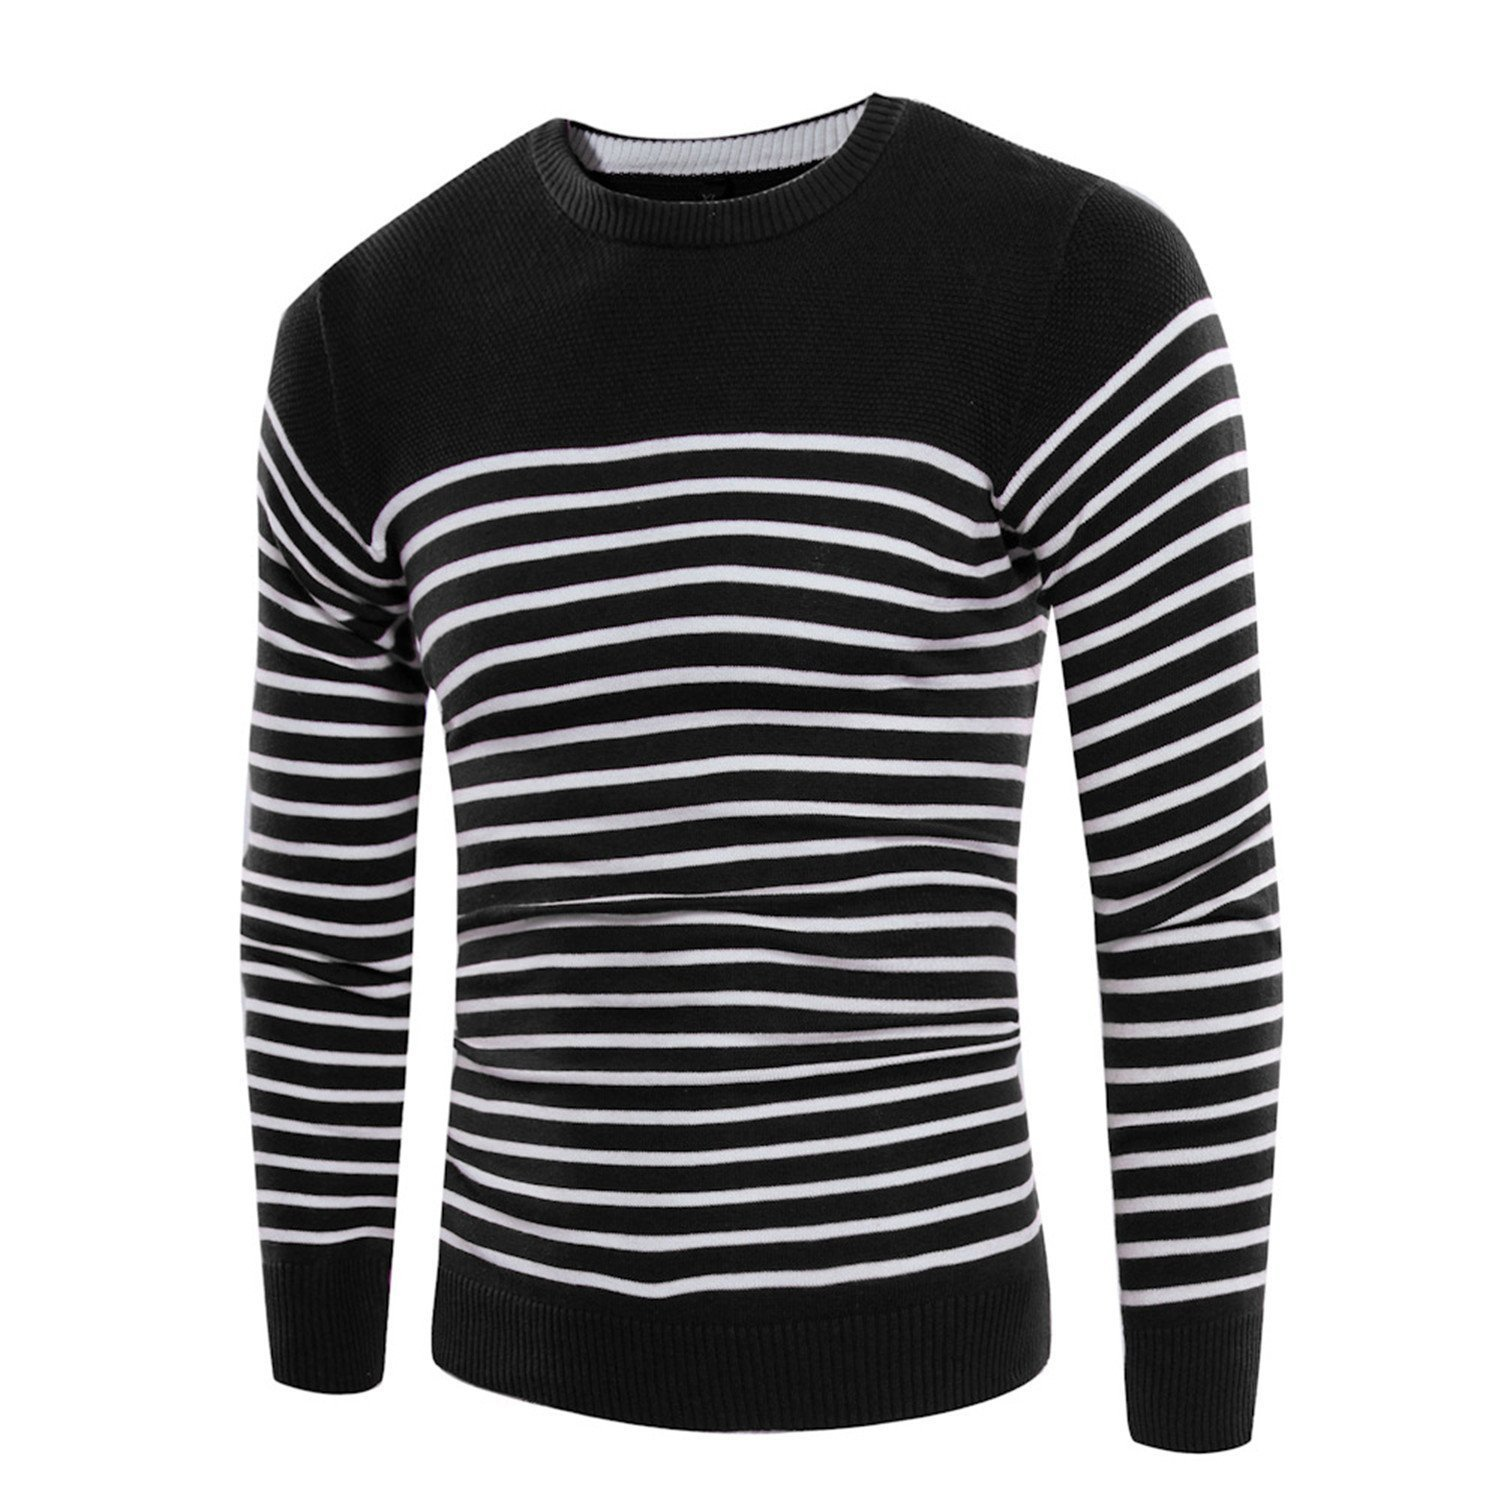 Cheryl Bull Trendy Knitted Sweaters O-Neck Jumper Men's Cotton Pullover Knitting White Black Navy Grey Striped Sweater Wine RedX-Large by Cheryl Bull Business-suit-vests (Image #3)